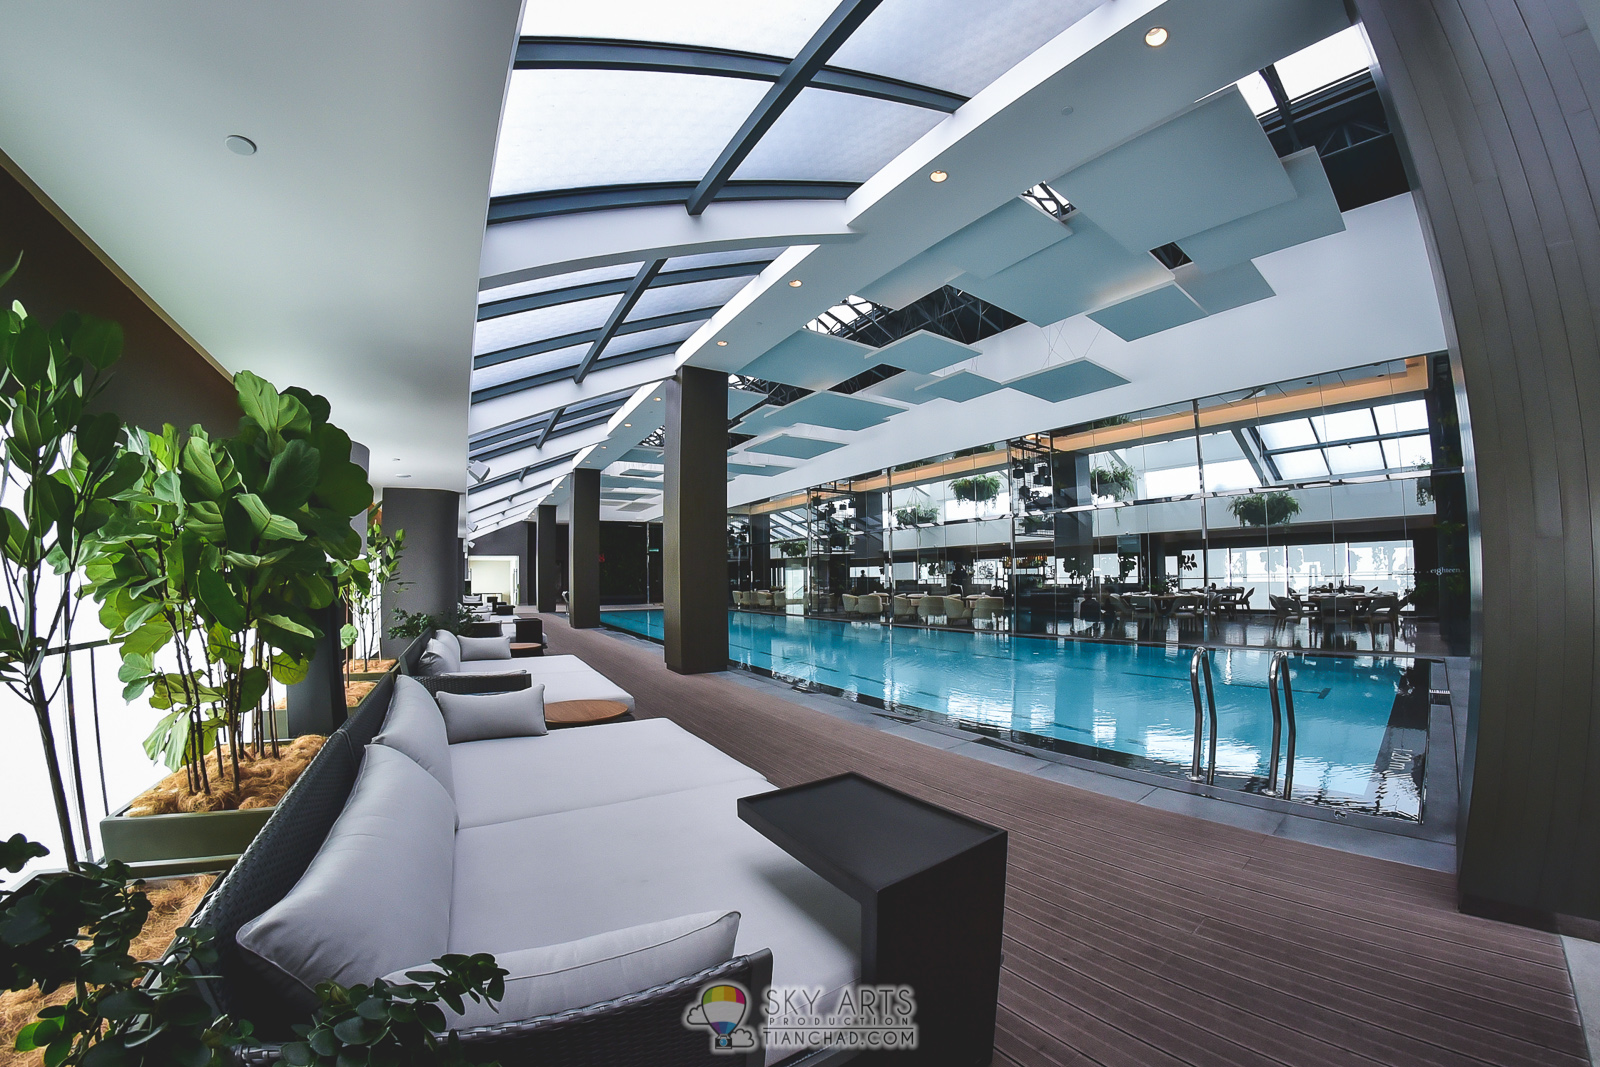 The undiscovered swimming pool restaurant genting for Knebel design pool ug